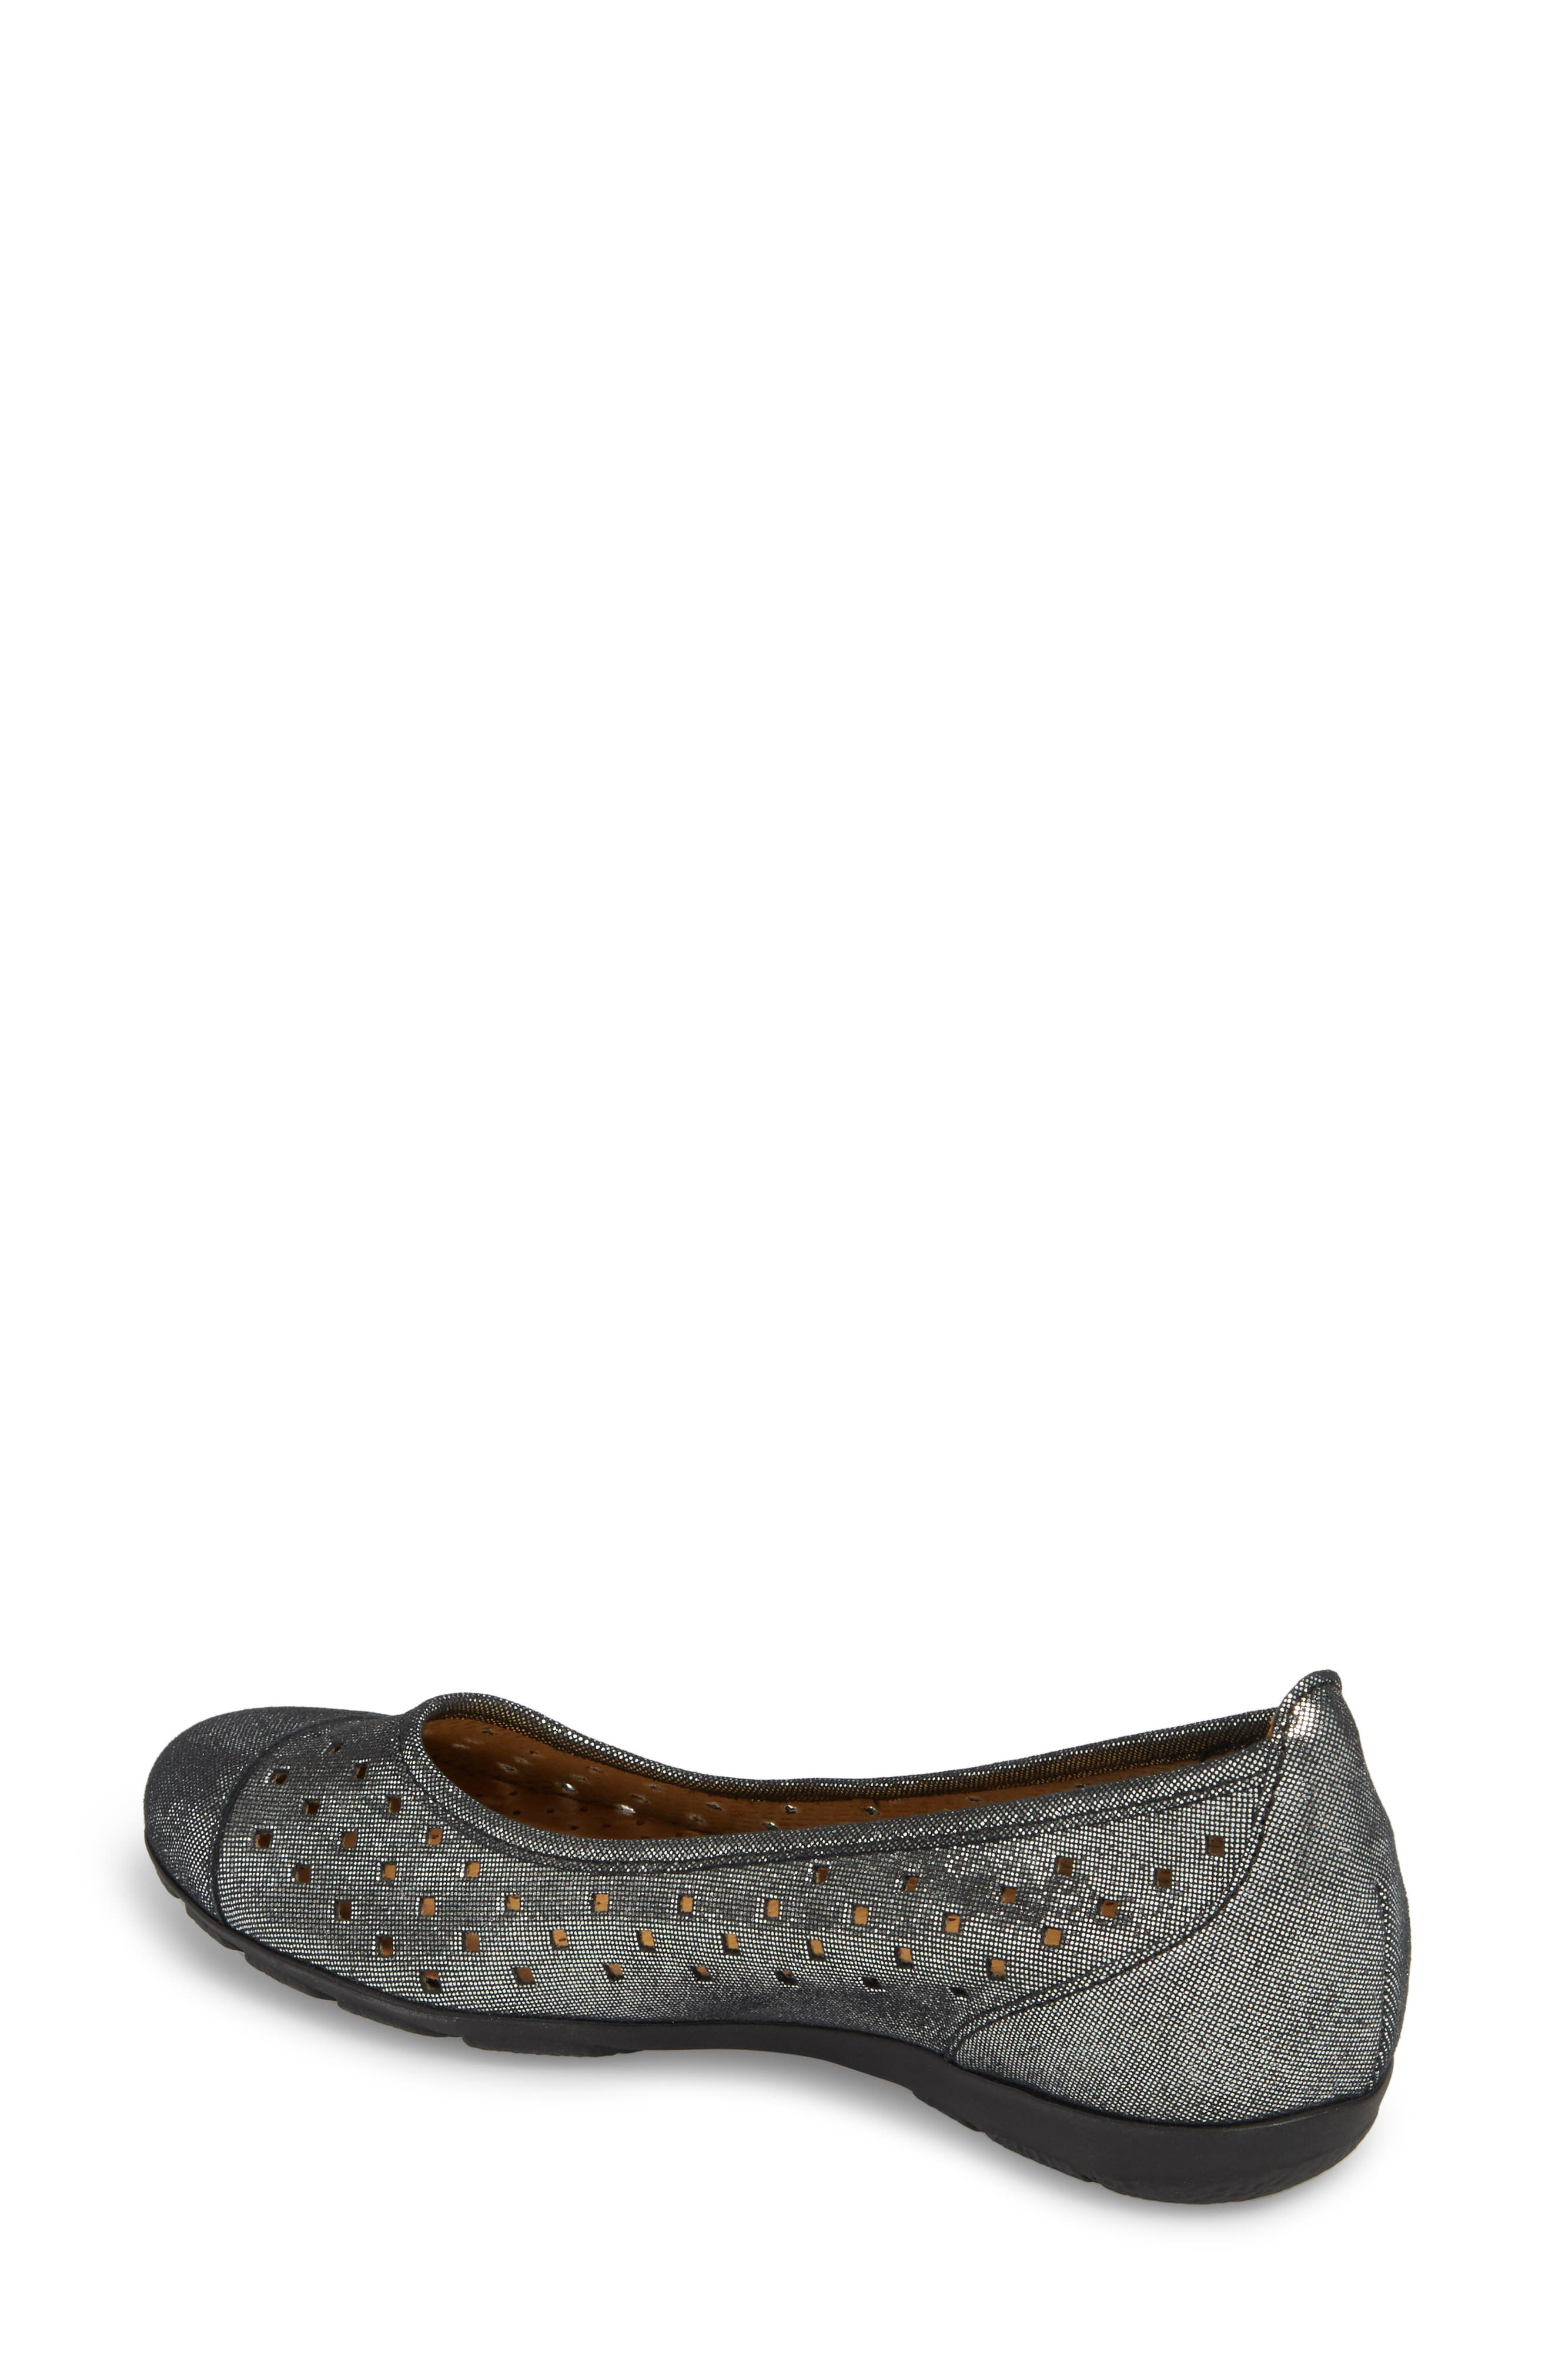 Perforated Ballet Flat,                             Alternate thumbnail 2, color,                             BLACK METALLIC LEATHER